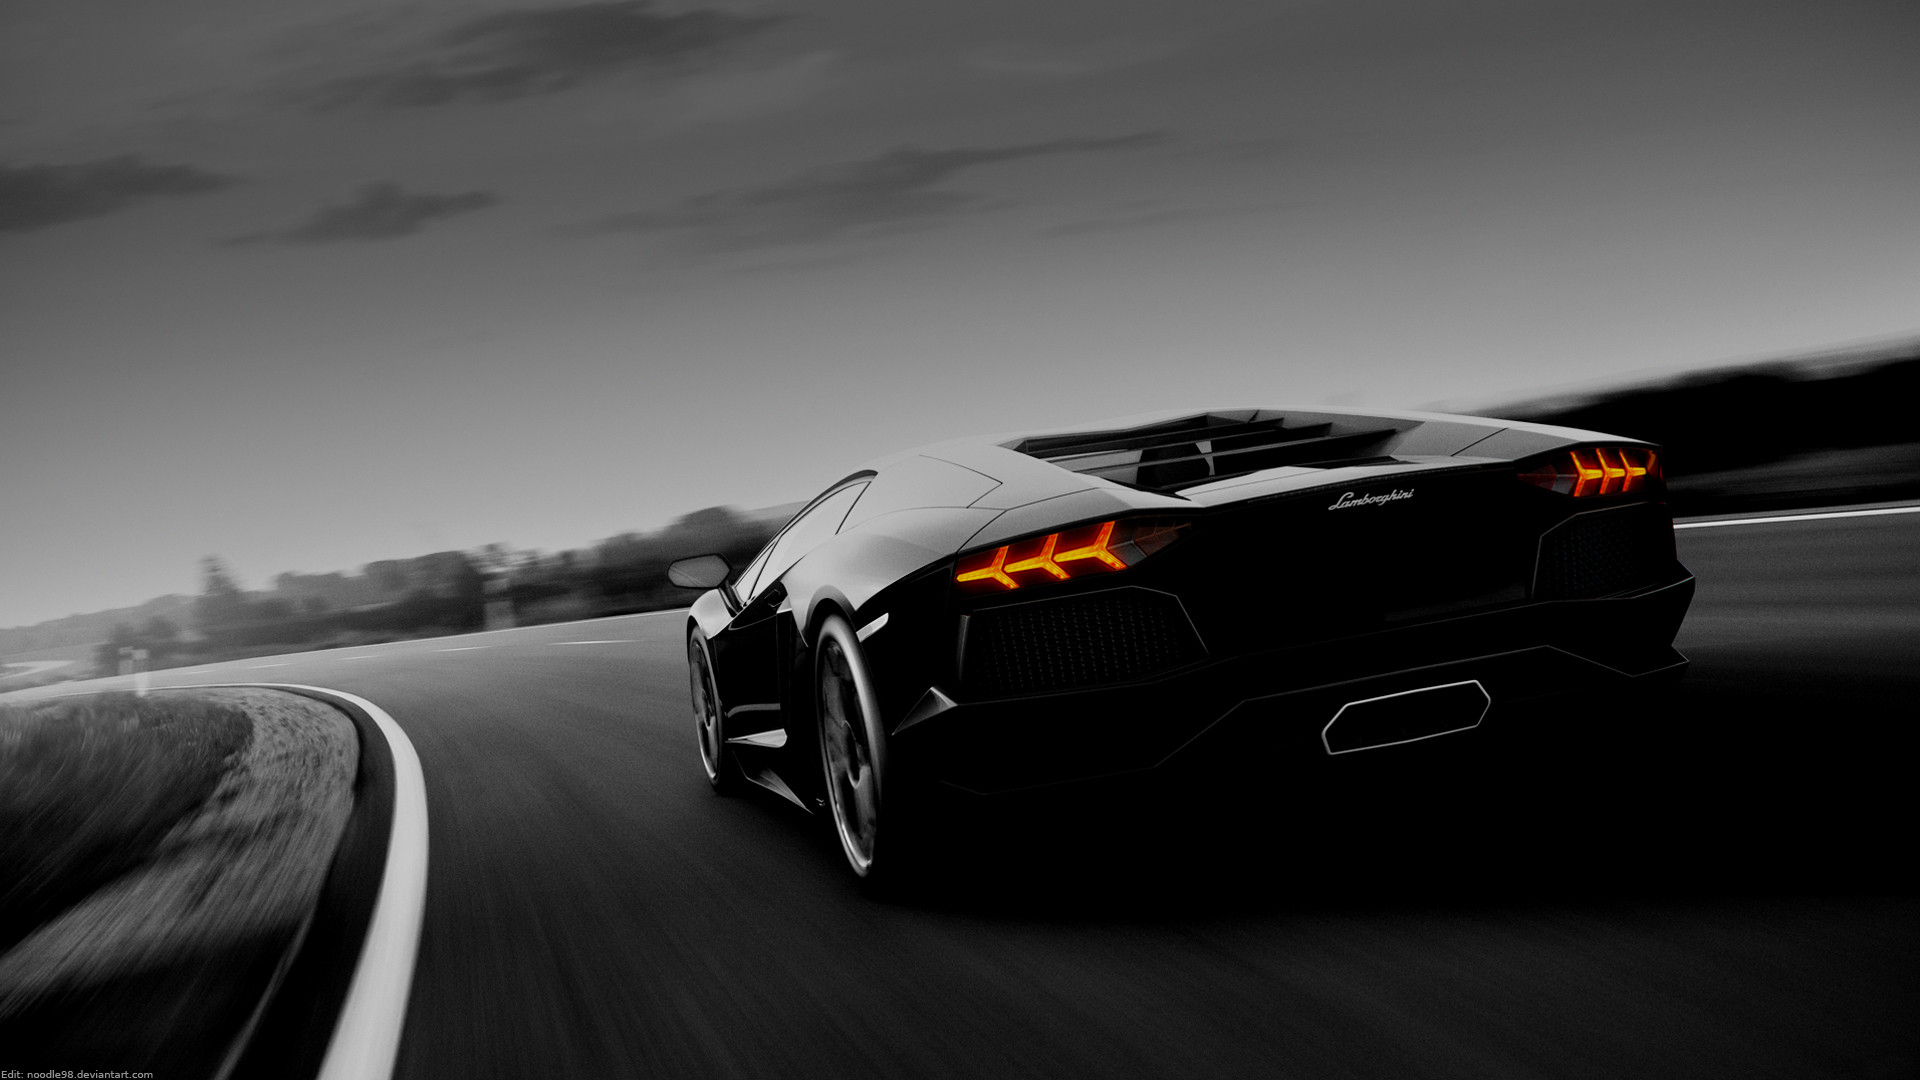 My favorite Lamborghini Aventador 1080p wallpapers   Album on Imgur 1920x1080